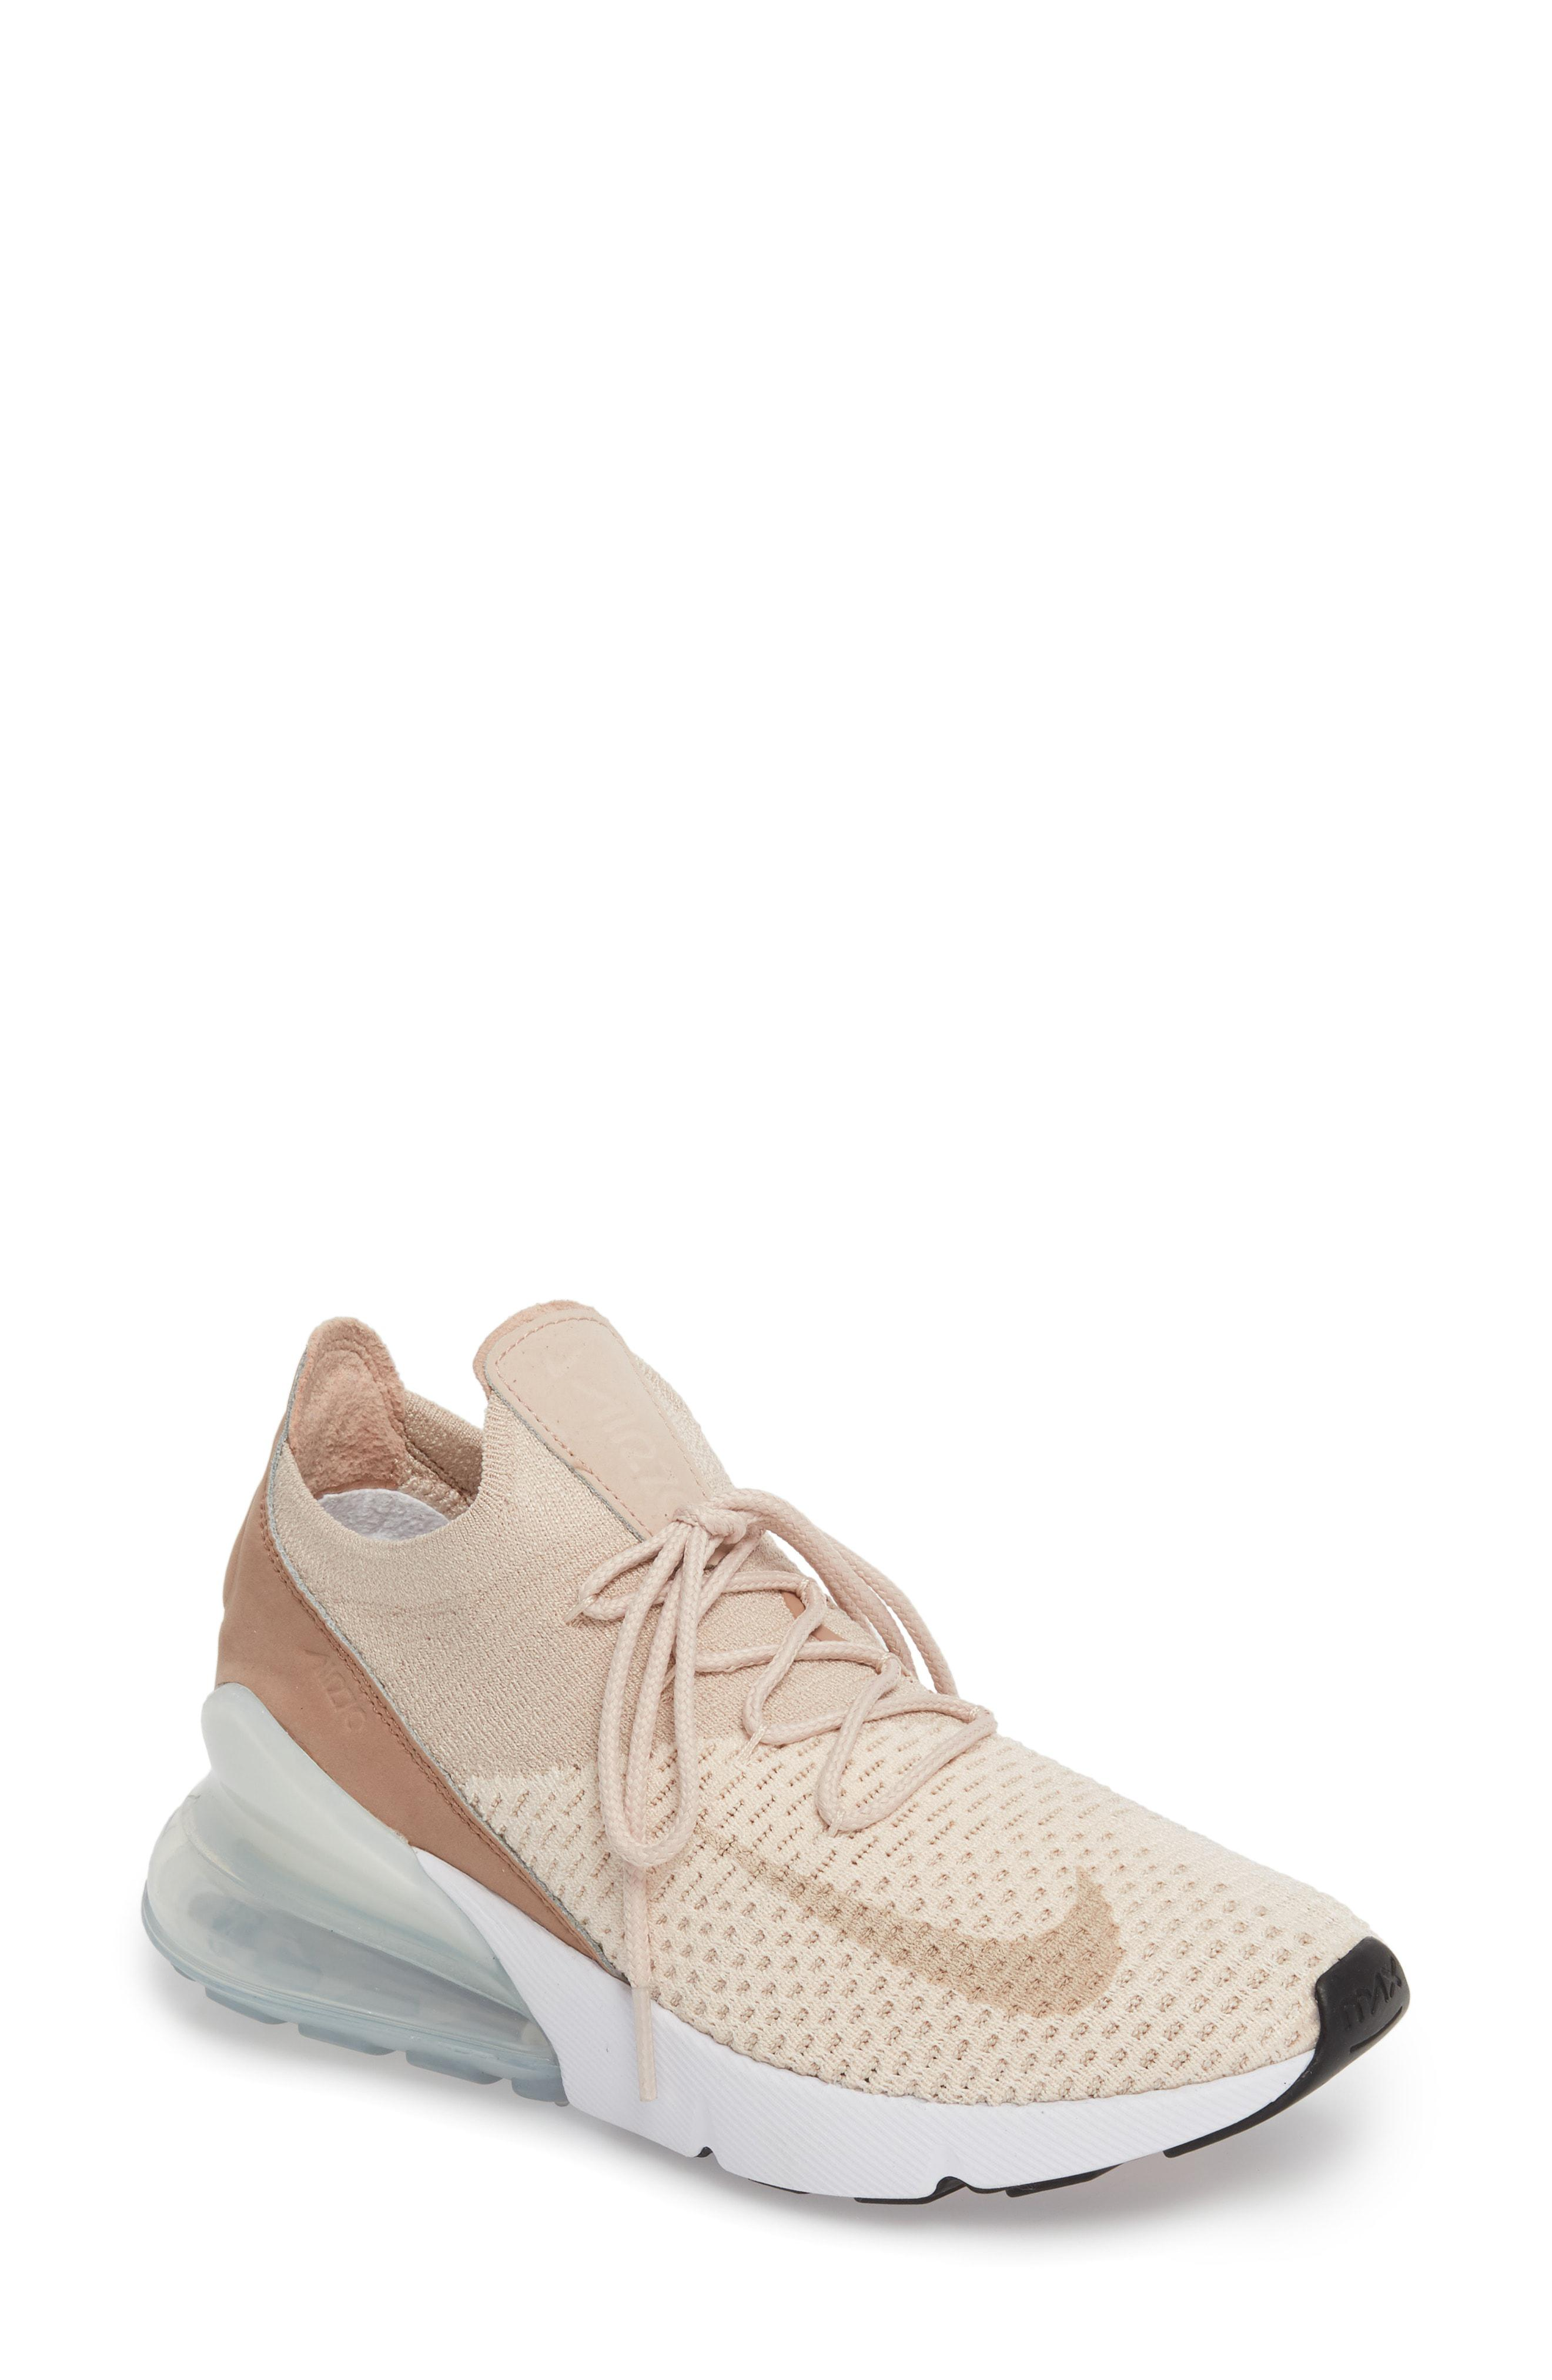 cf57a54e1d67 Gallery. Previously sold at  Nordstrom · Women s Veja Wata Women s Nike Air  Max ...